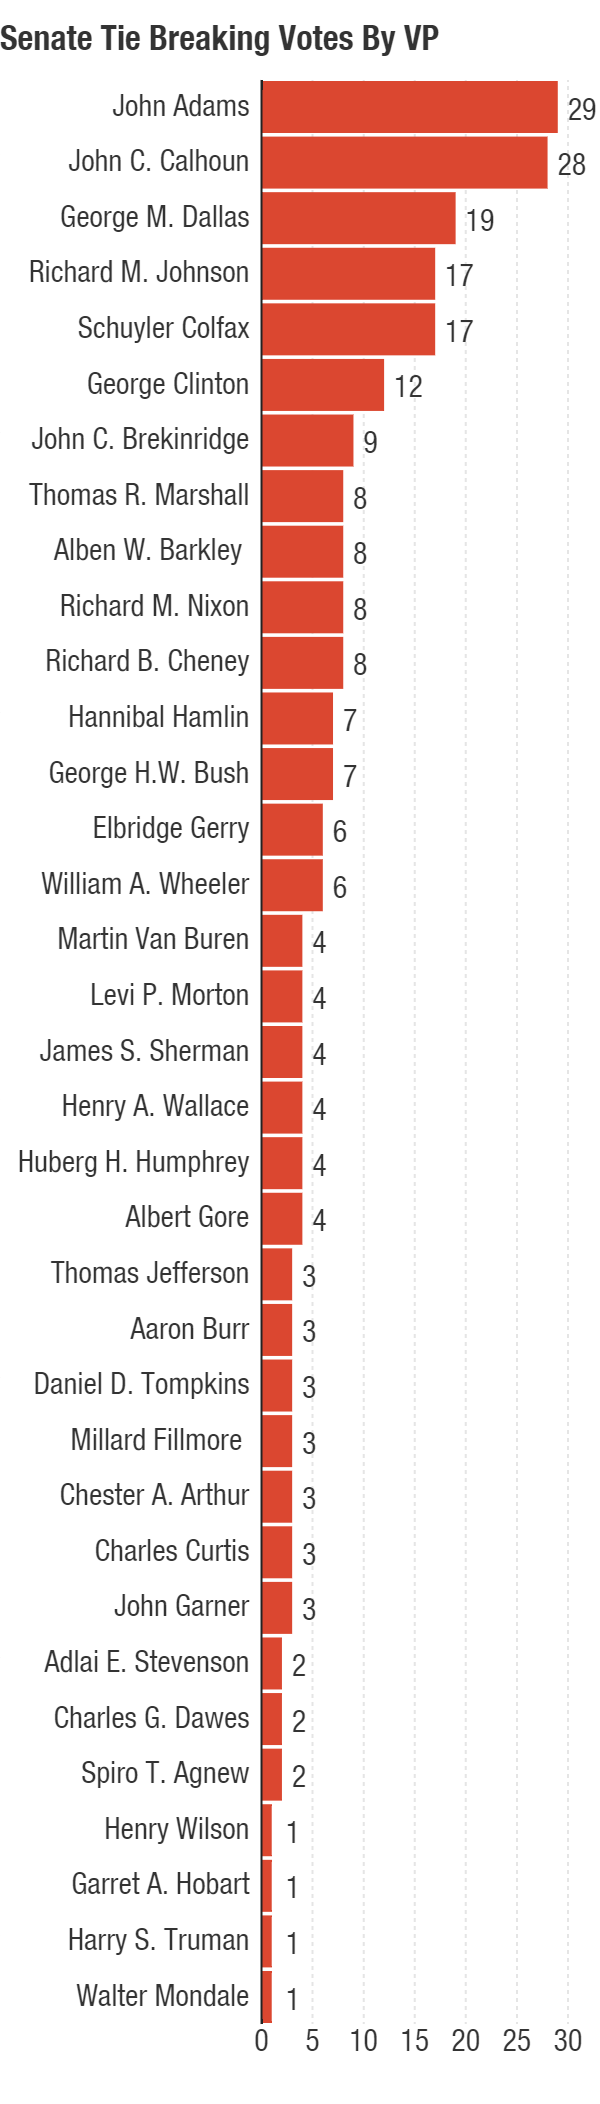 John Adams leads the list, which was produced using data compiled by the Senate Historical Office. Note that no ties have been broken by: John Tyler, William R. King, Andrew Johnson, Thomas A. Hendricks, Theodore Roosevelt, Charles W. Fairbanks, Calvin Coolidge, Lyndon B. Johnson, Gerald R. Ford, Nelson Rockefeller, Dan Quayle or Joe Biden.